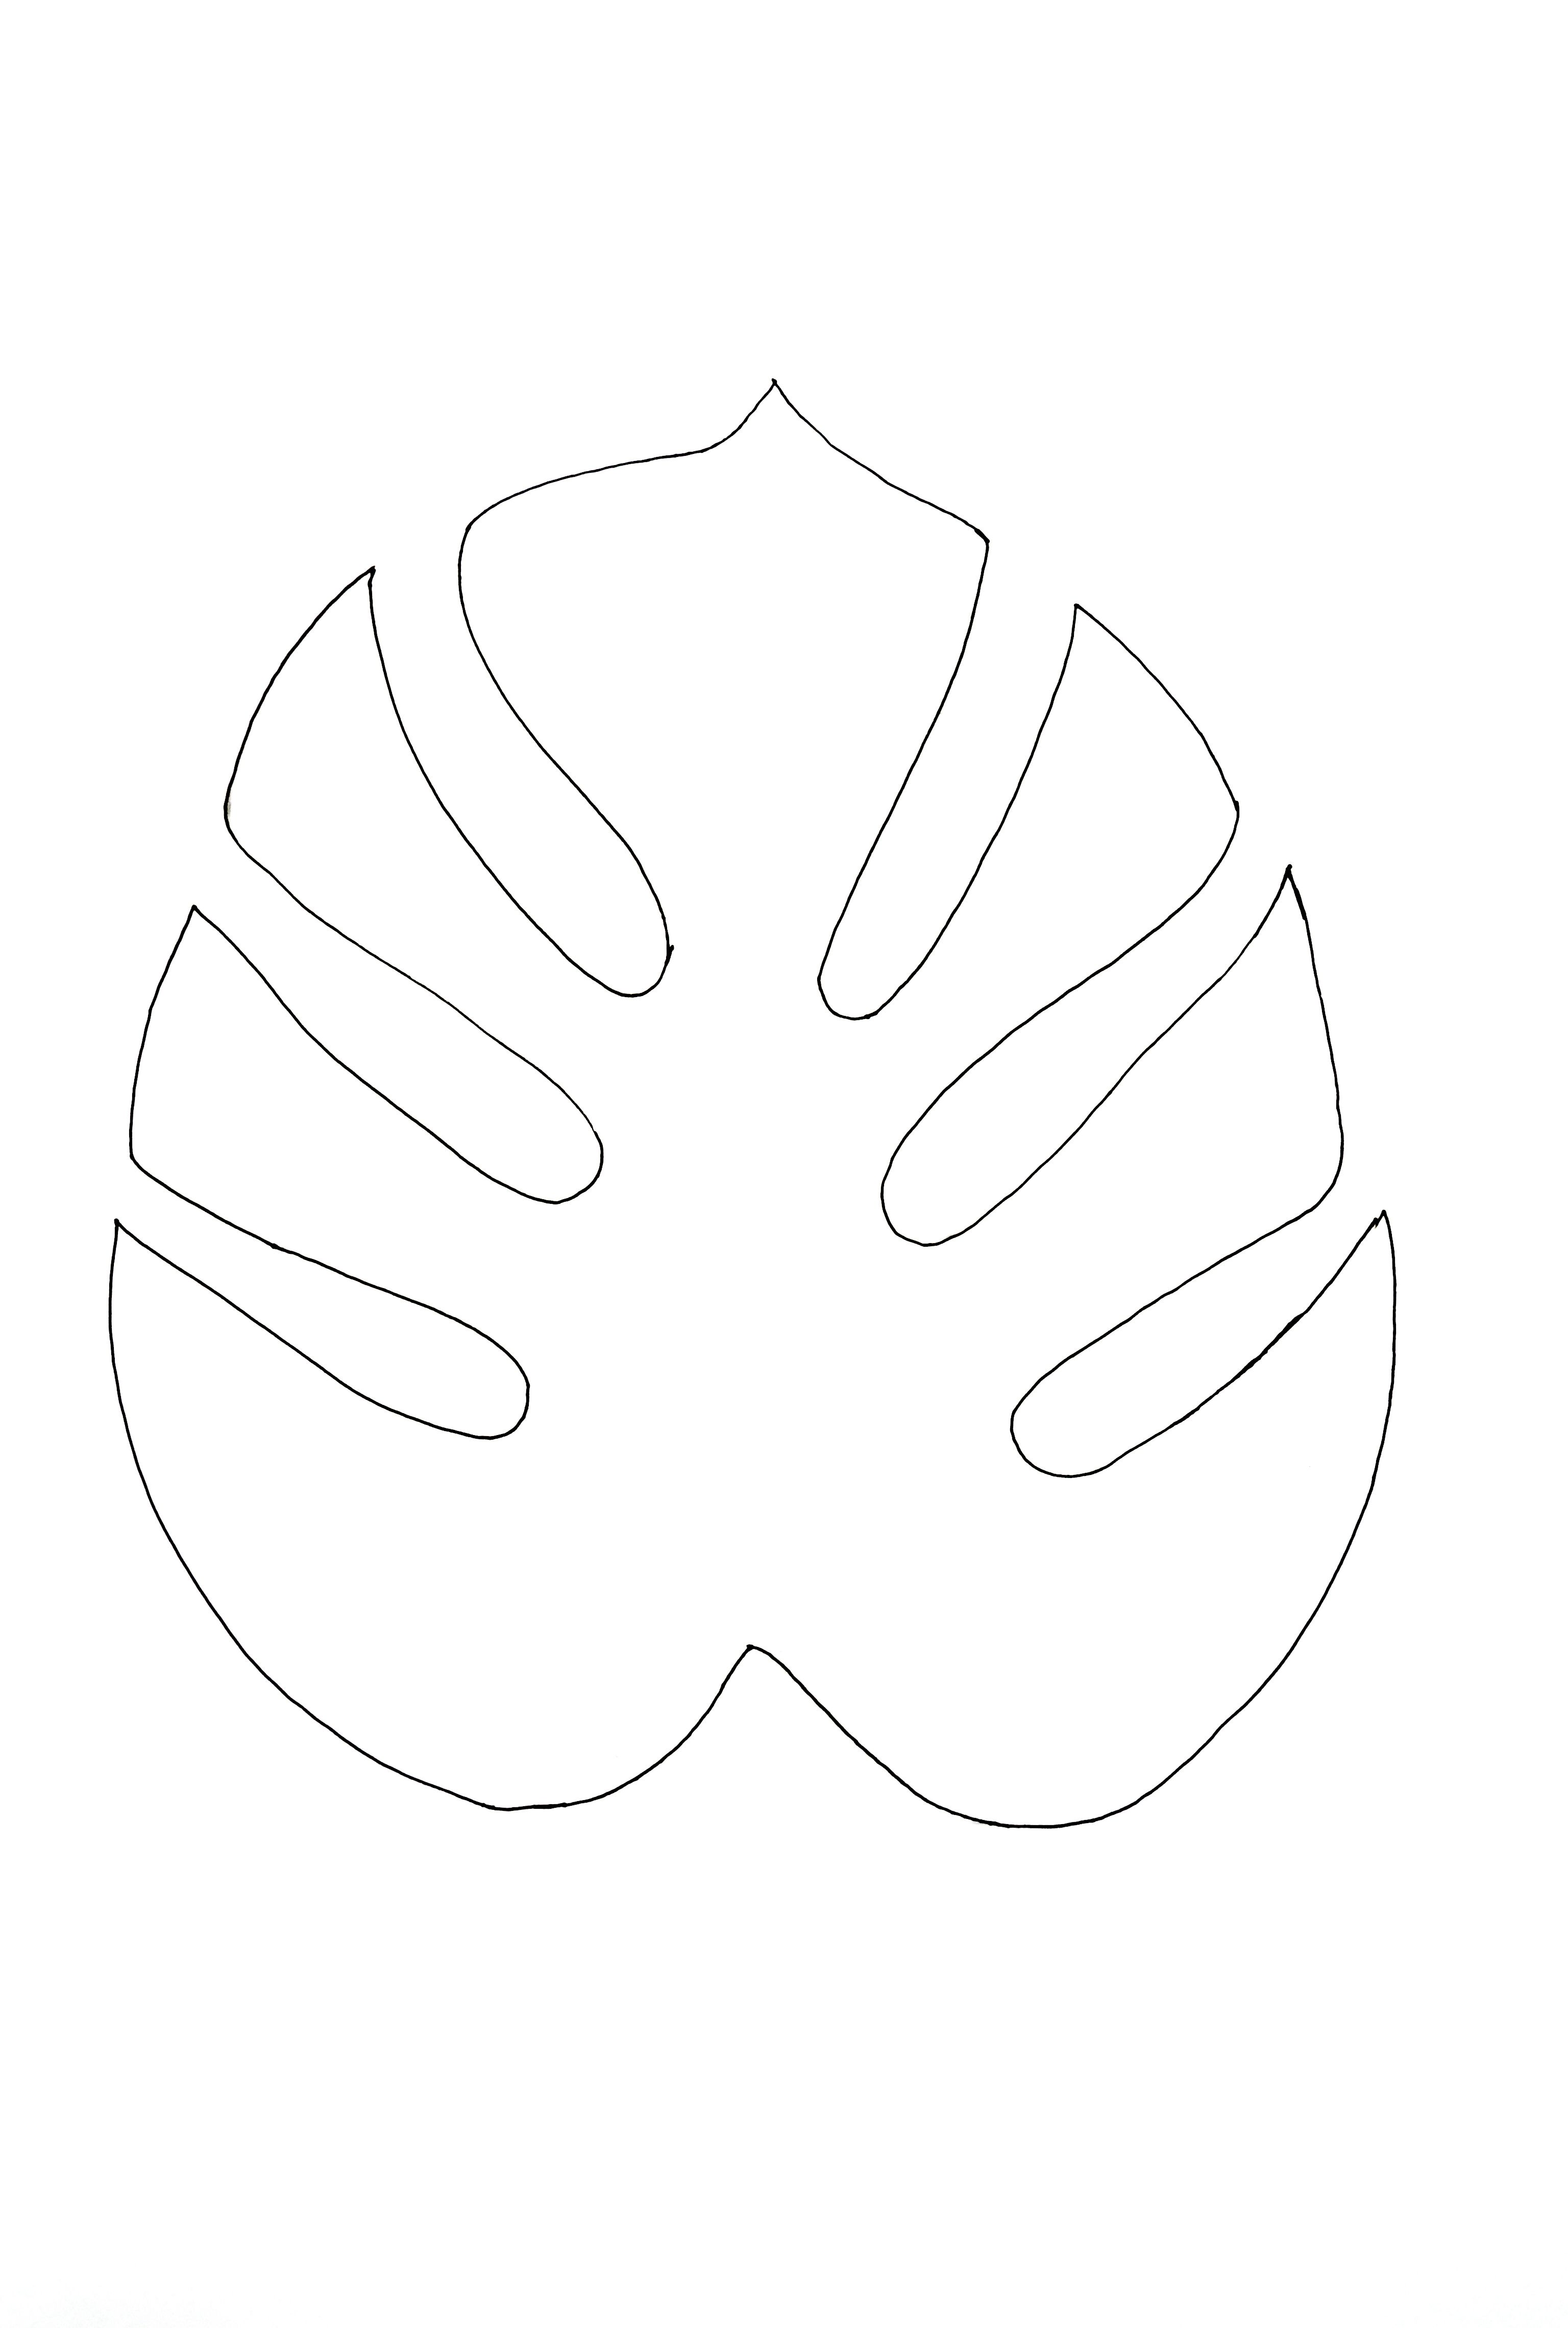 Monstera outlinejpg 3072x4560 printables and designs for Jungle leaf templates to cut out